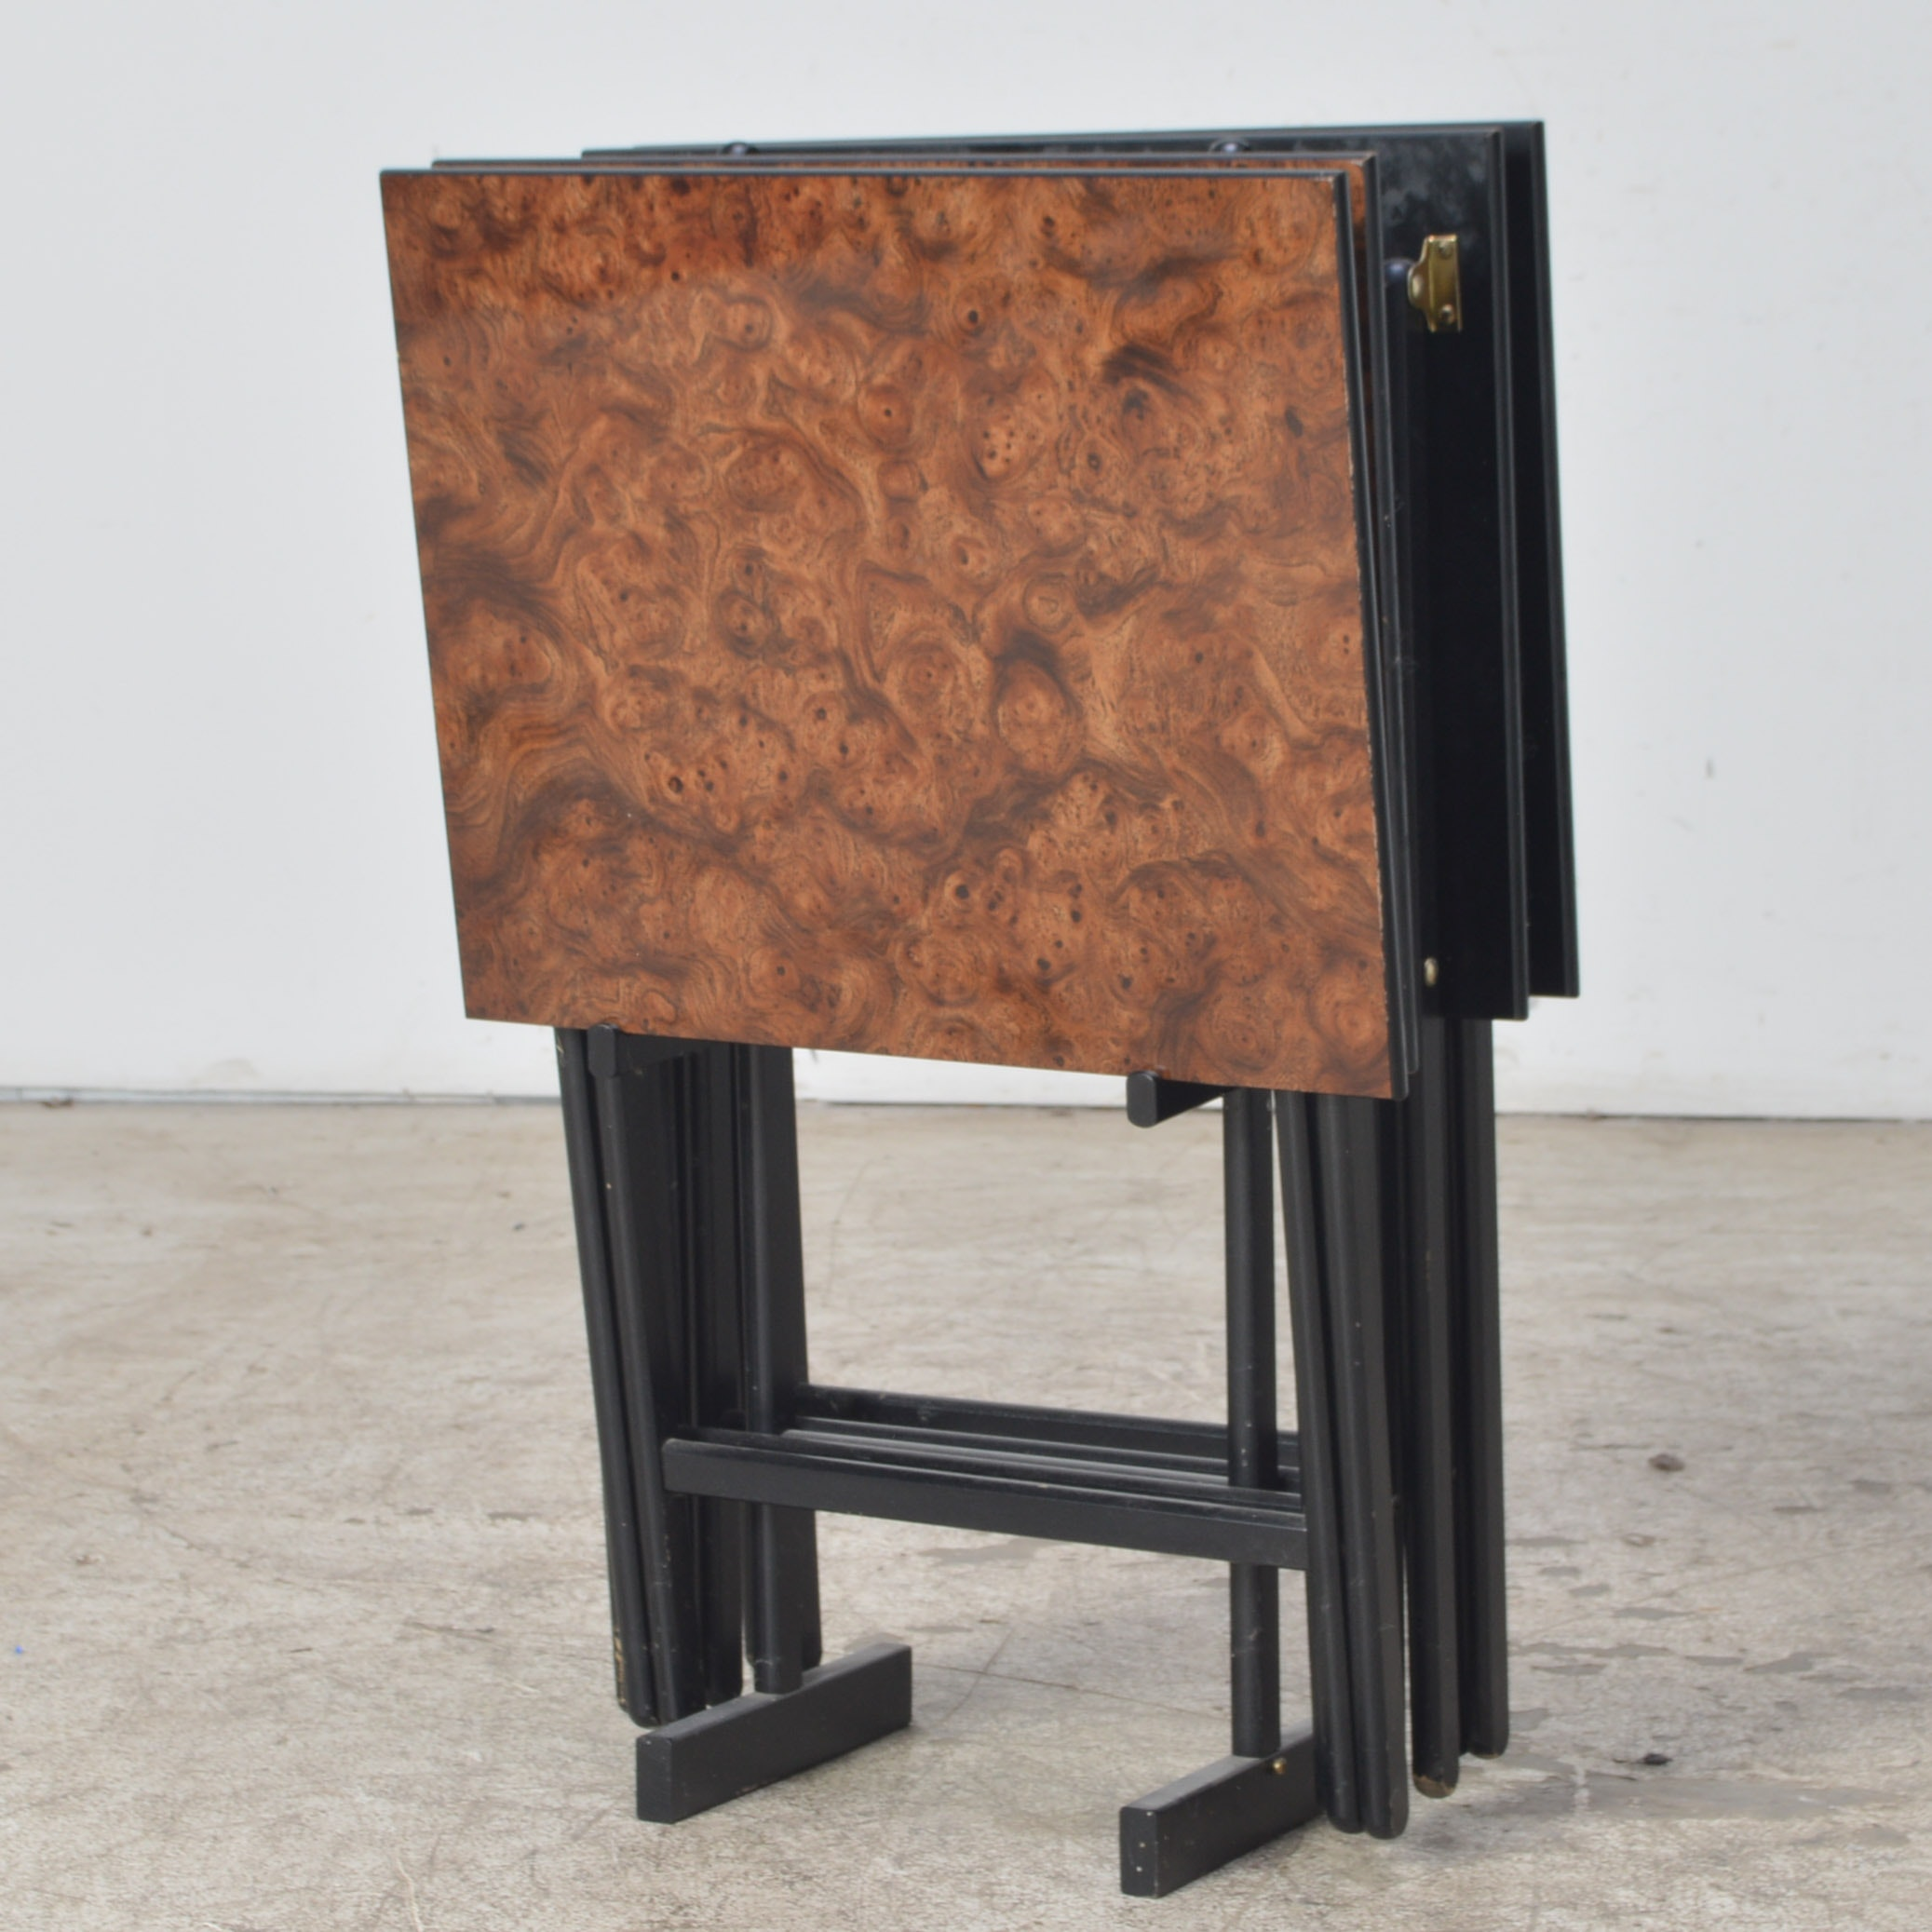 Vintage TV Tray Table Set by Scheibe EBTH